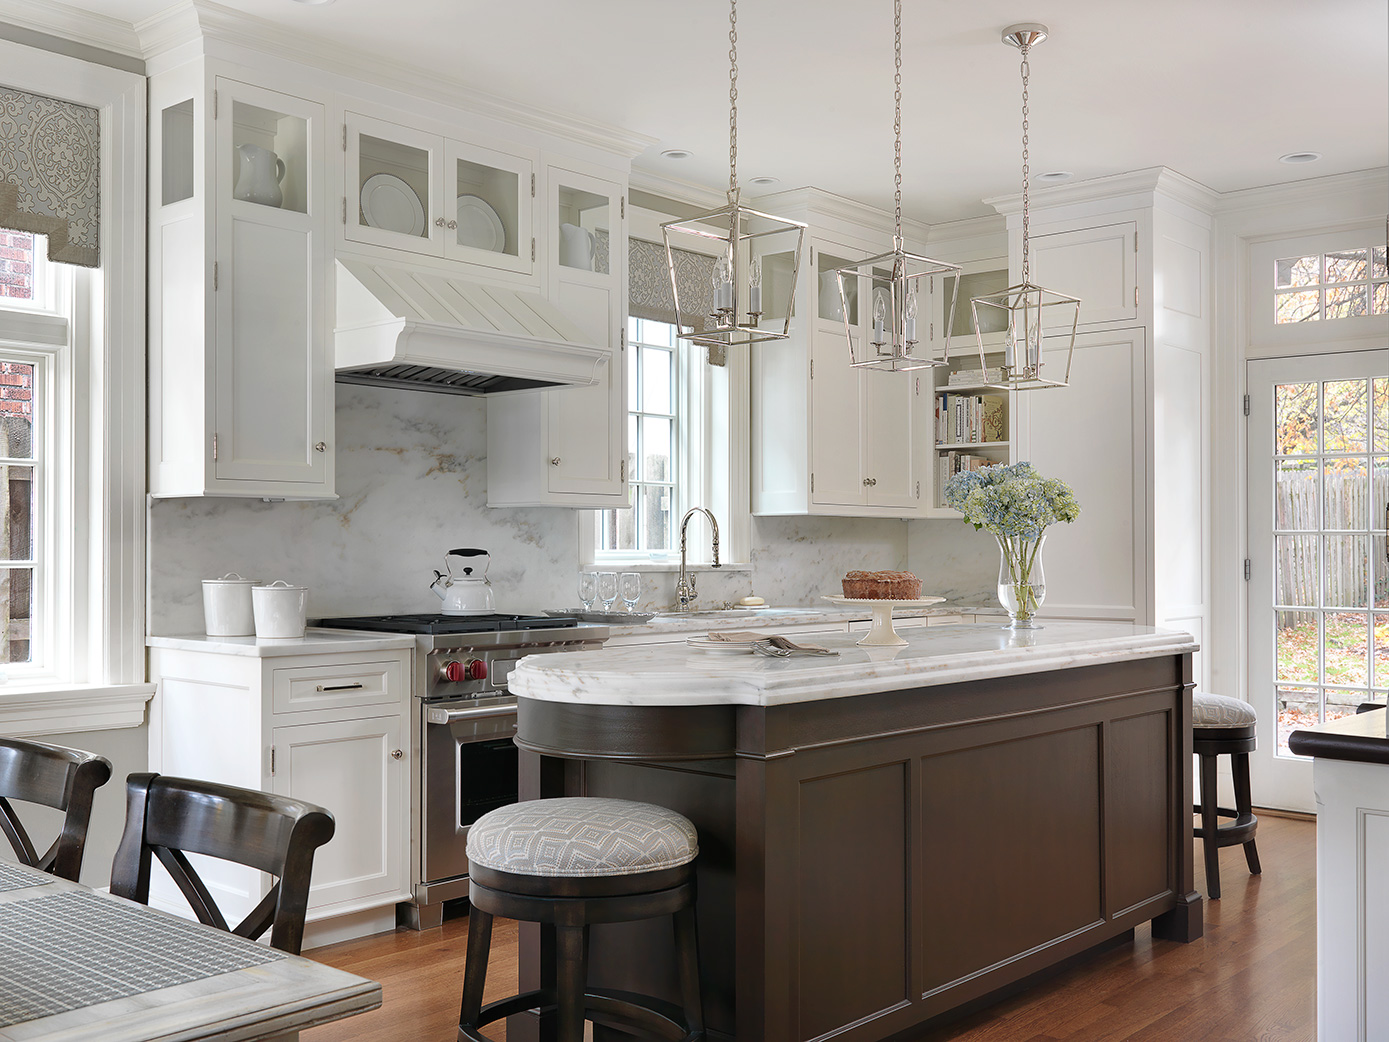 Award Winning Bath And Kitchen Designer In Frontenac Ladue